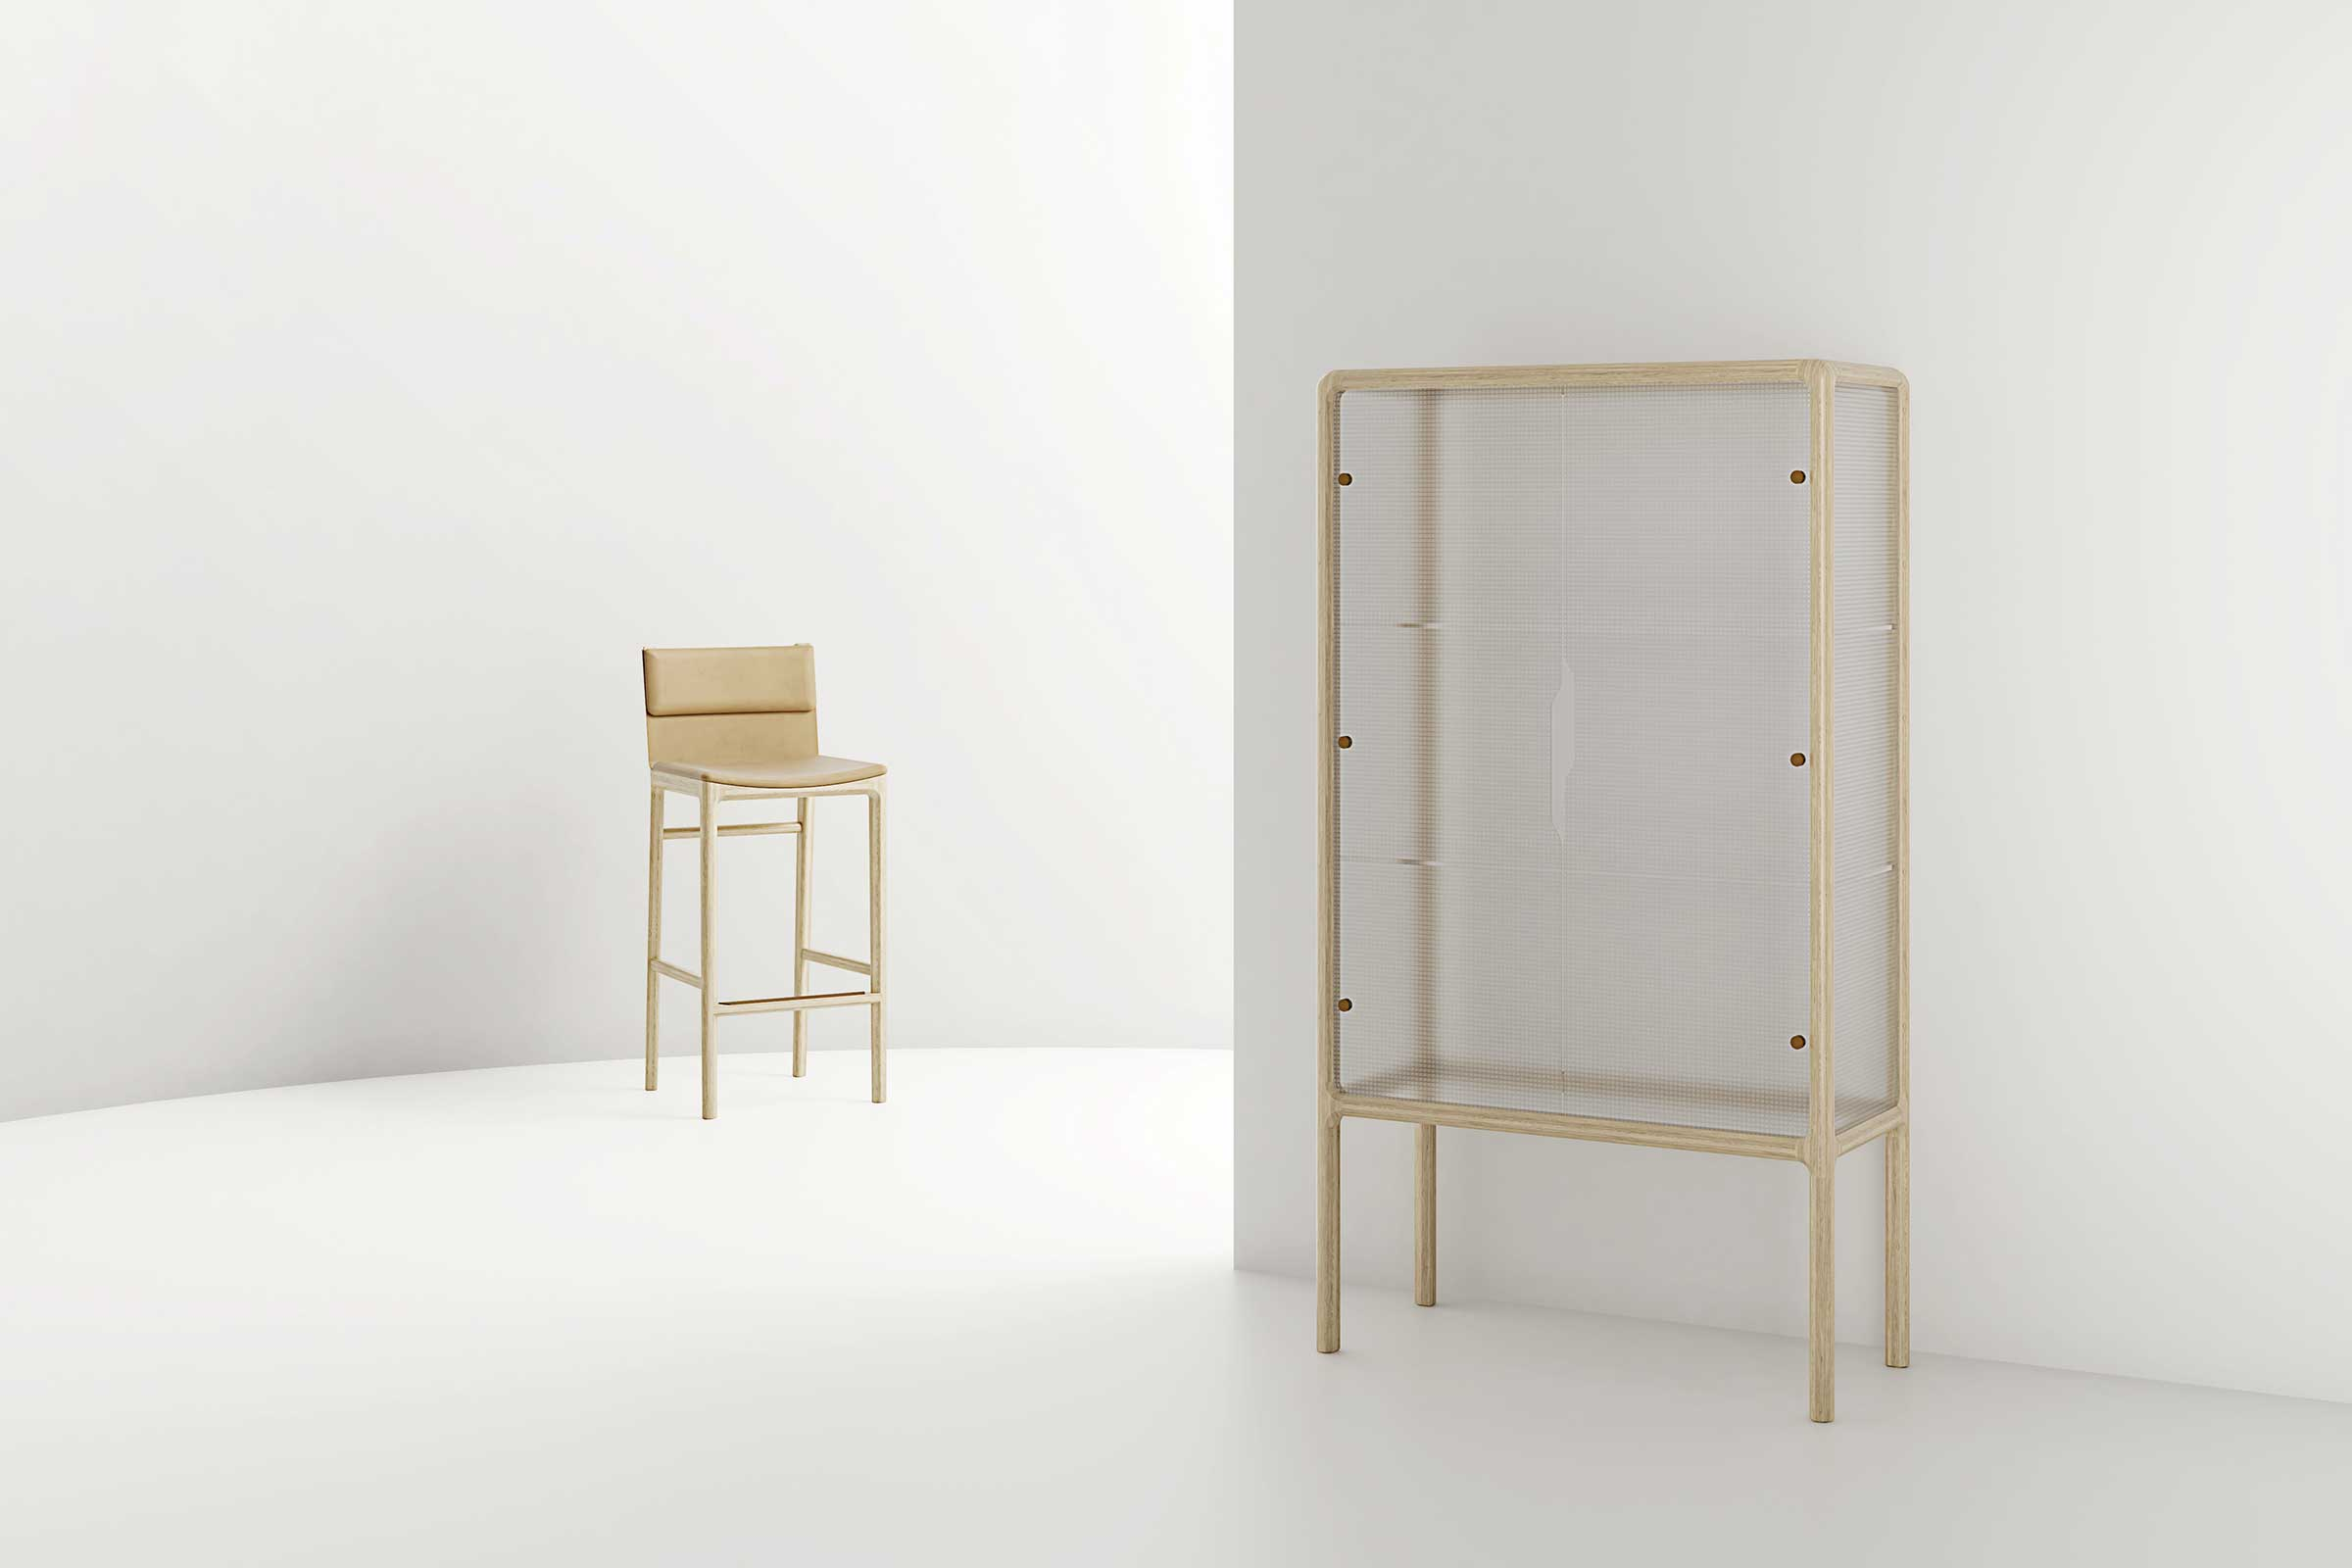 The Taylor cabinet and bar stool for Stellar Works